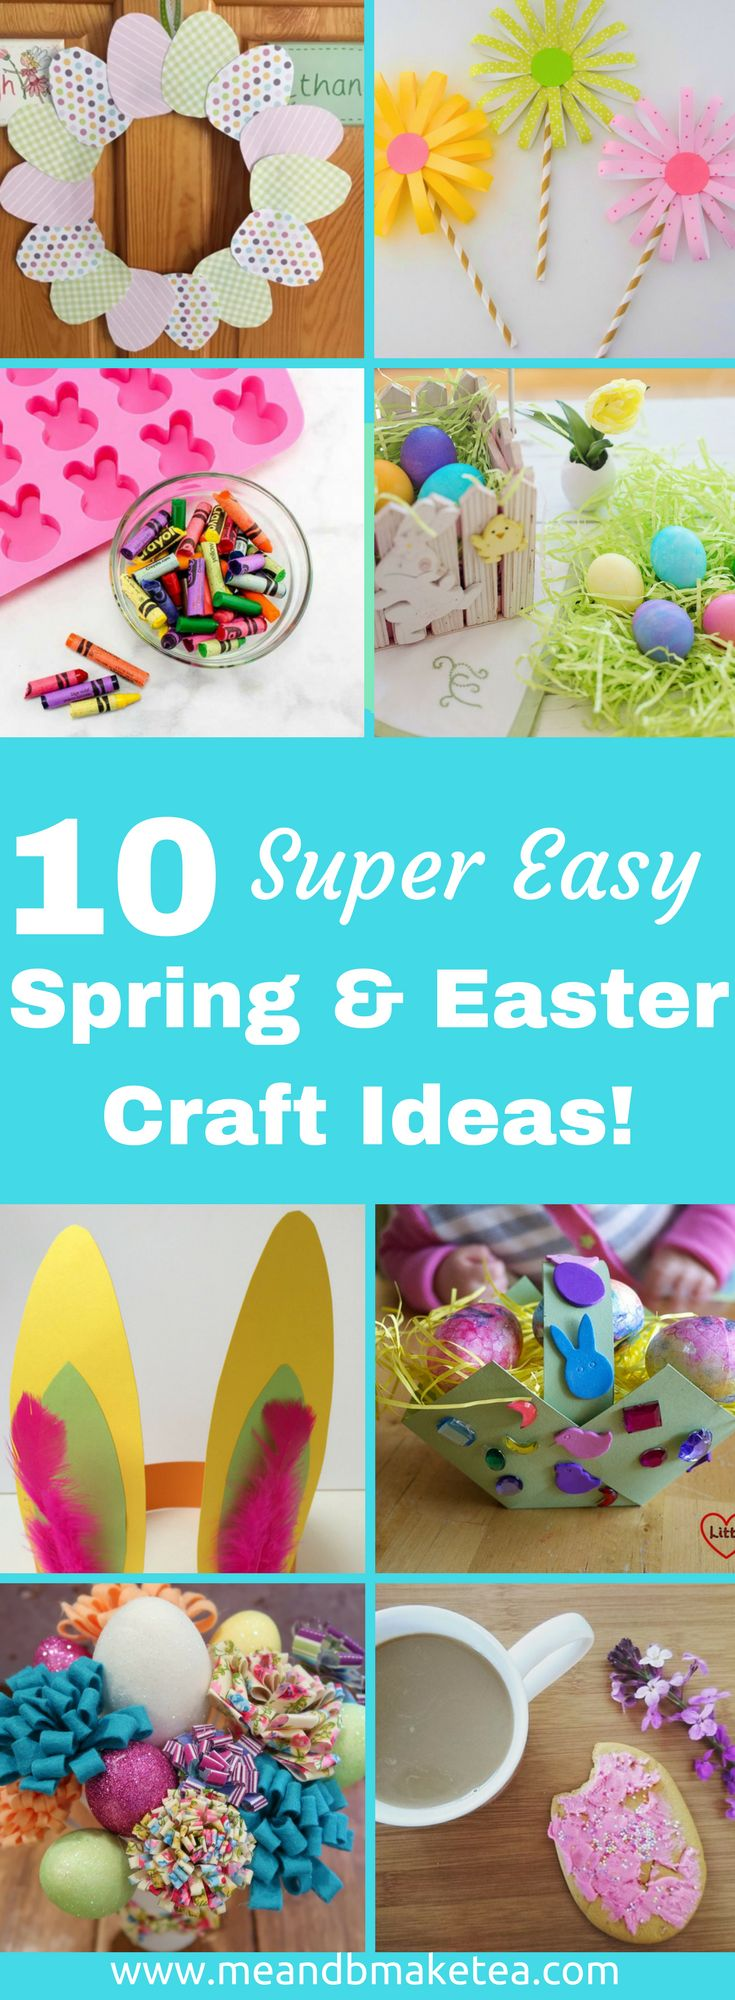 10 Easy Easter and Spring Crafts to do With Kids - perfect for snow days and rainy days! To get us in the spring mood, I'm sharing a round-up of some cute Spring and Easter themed crafts you can do with the little ones. Have a look and let me know your thoughts! Oh and if you're looking for non-chocolate Easter gifts this year, take a look at our bumper list of 75 ideas here! #easter #crafts #kids